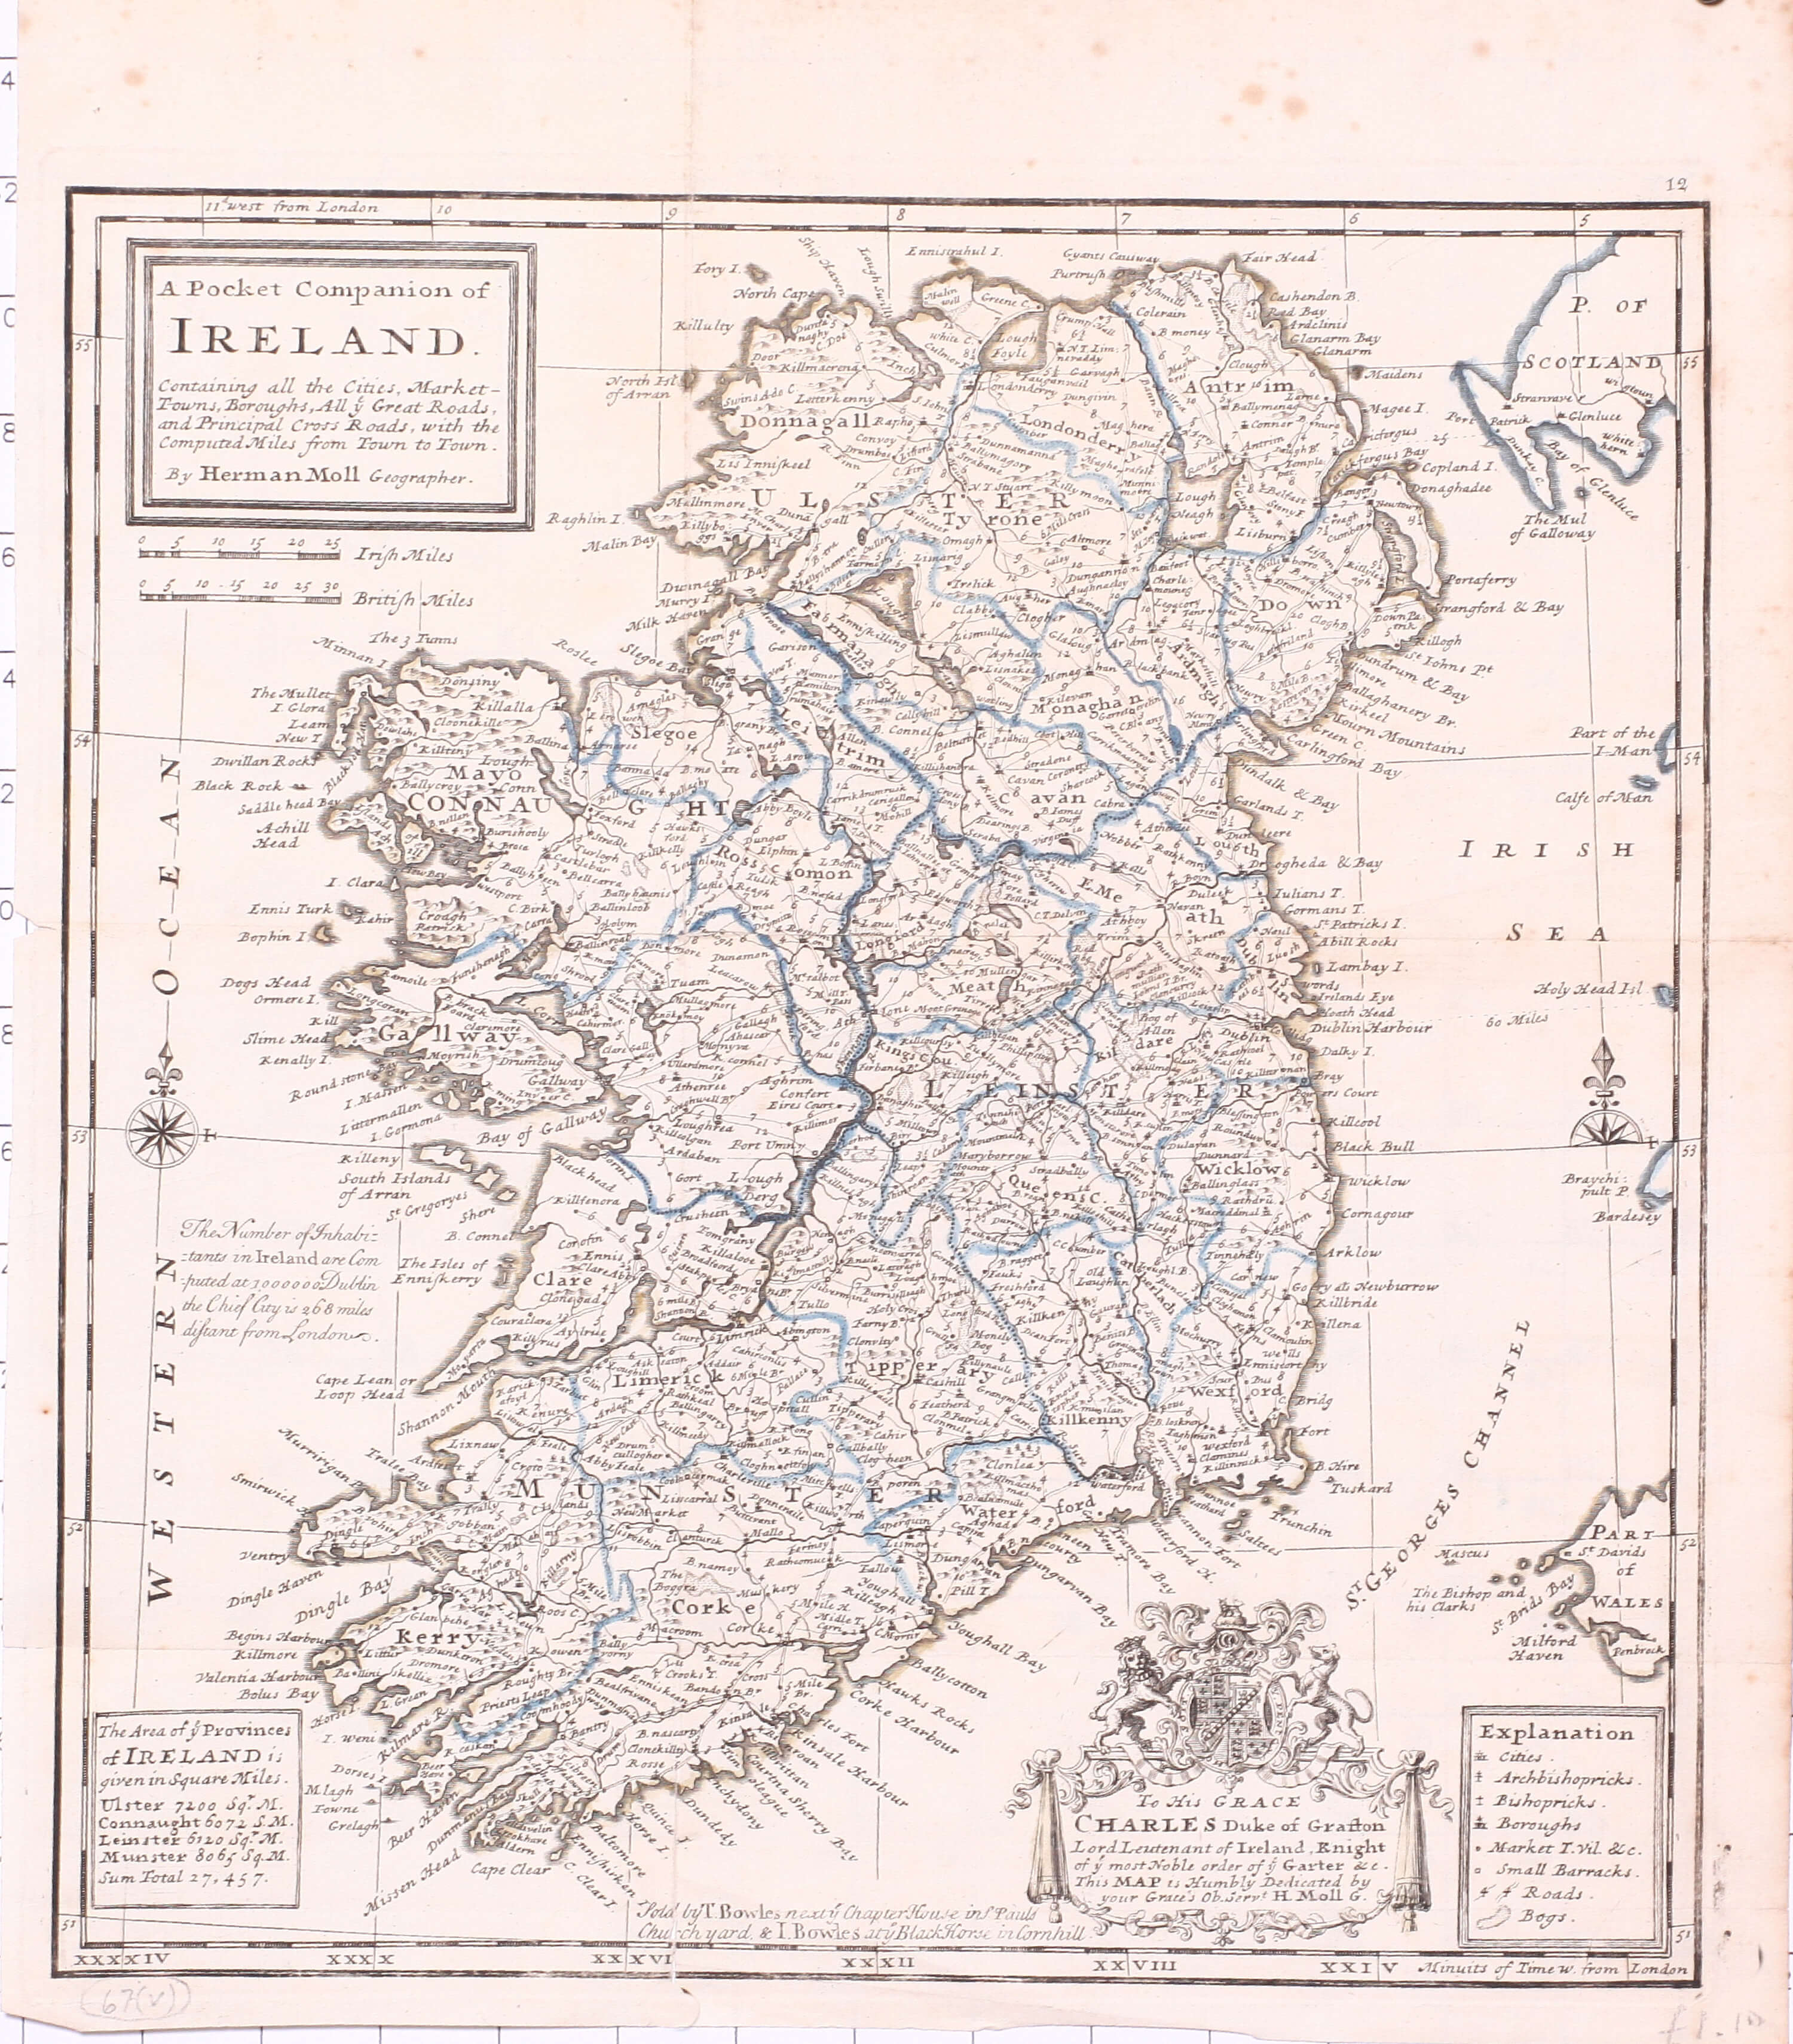 A4 Map Of Ireland.Maps Of Ireland Part 3 1718 1768 067ii 0104 L Brown Collection